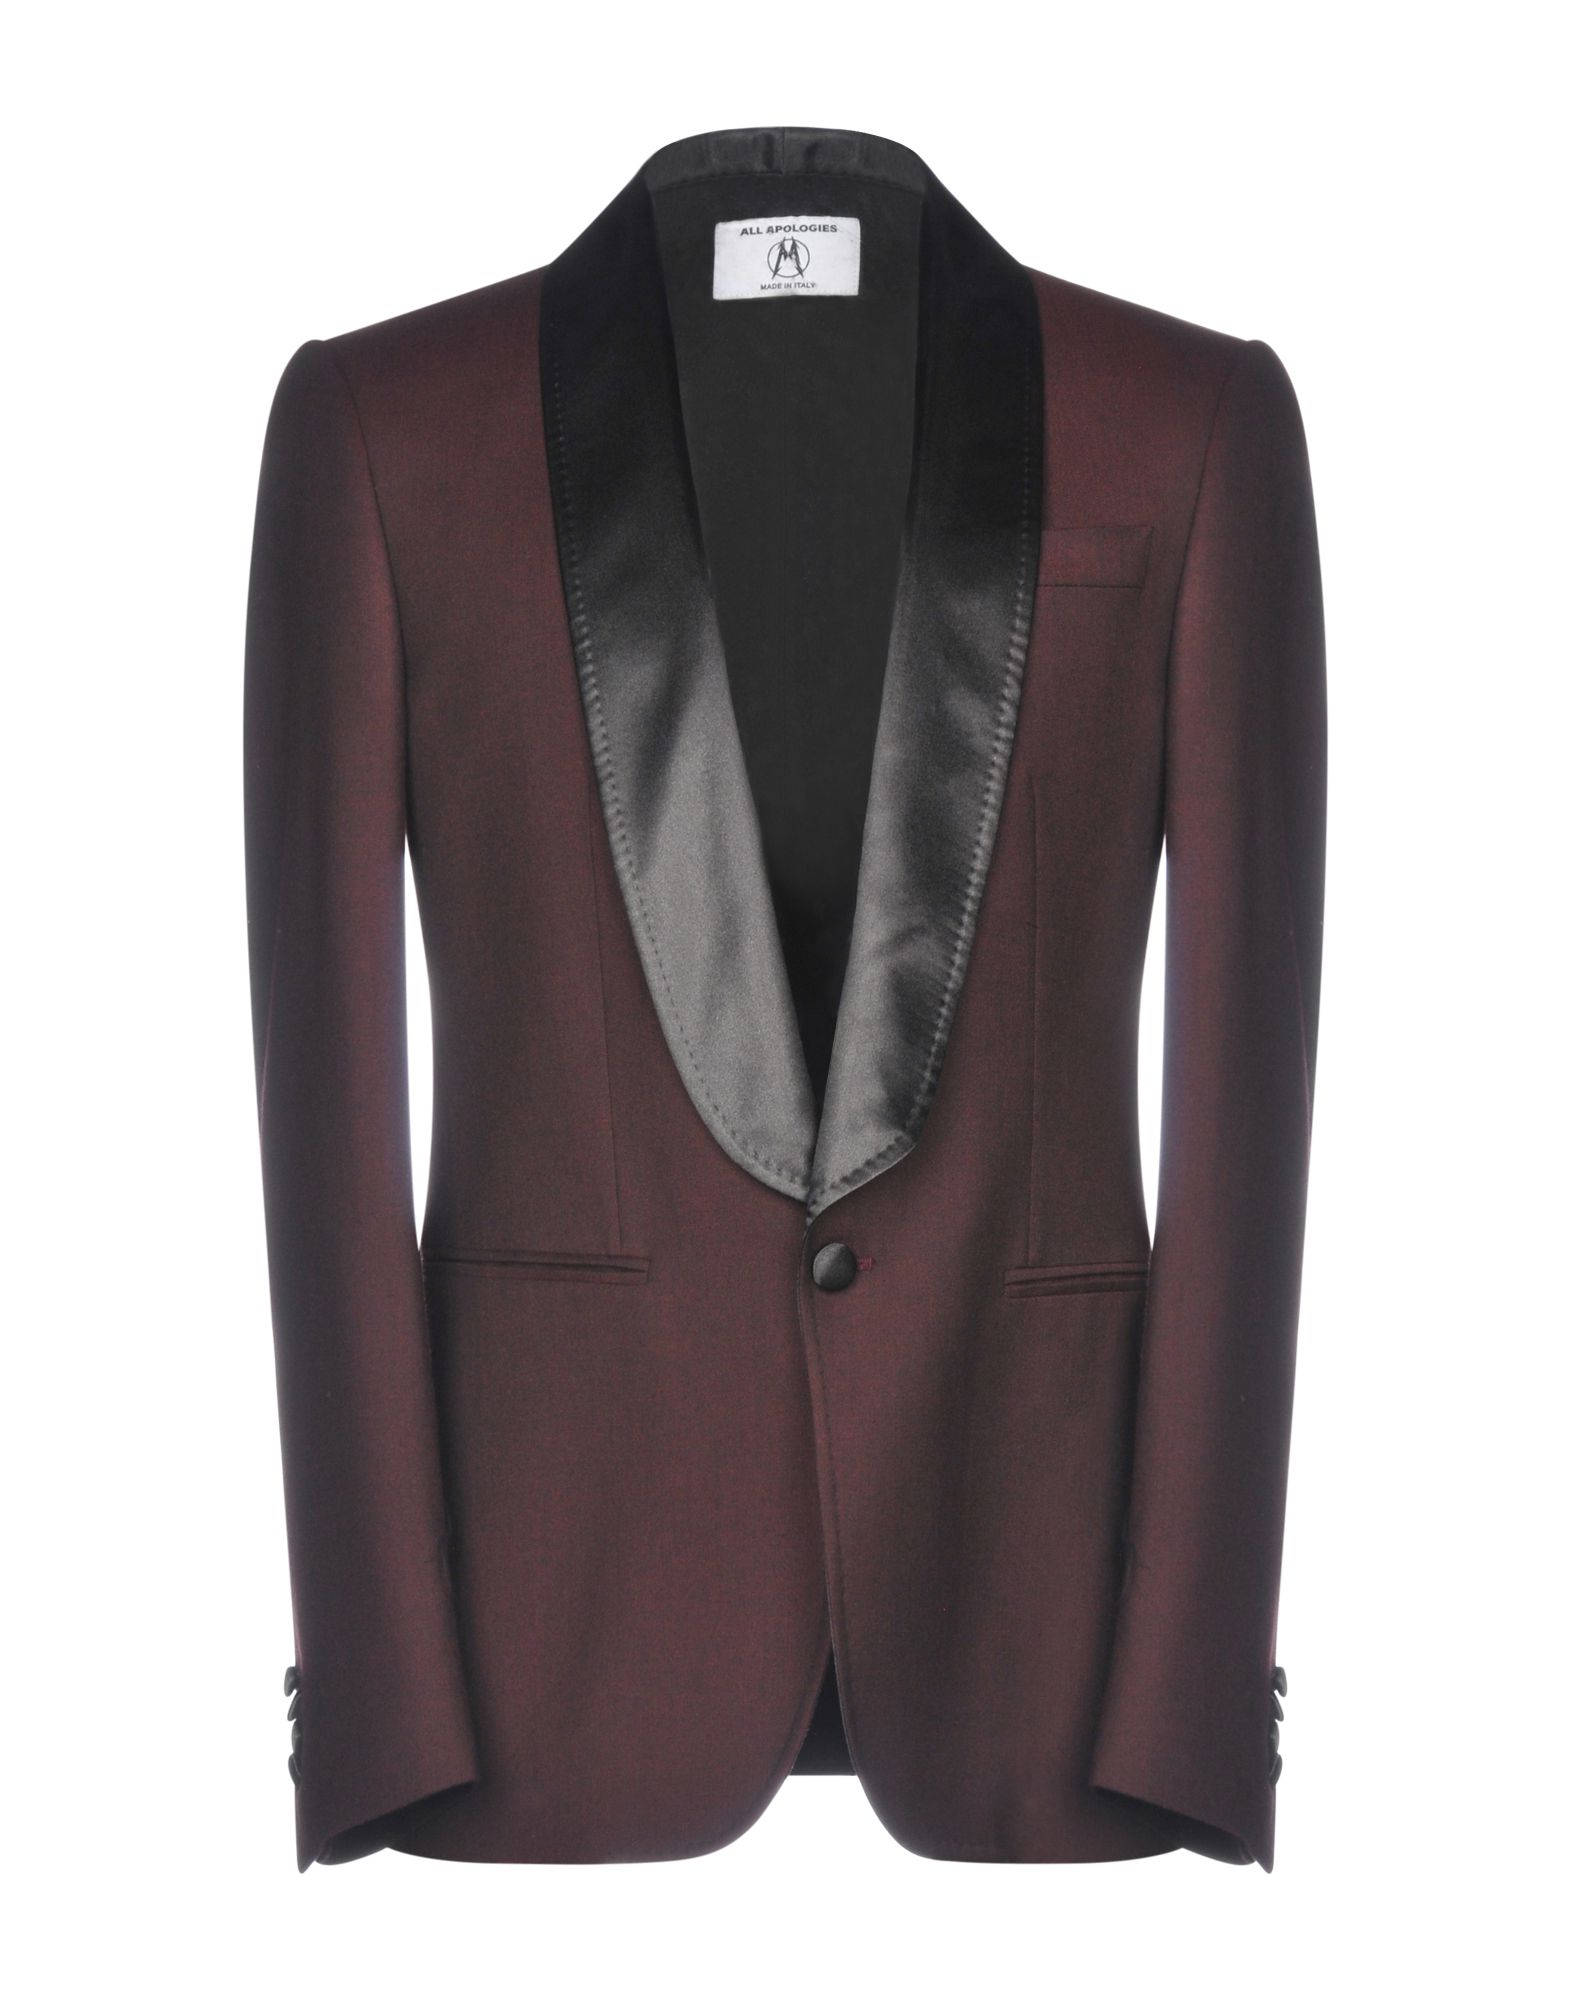 ALL APOLOGIES Blazer in Maroon